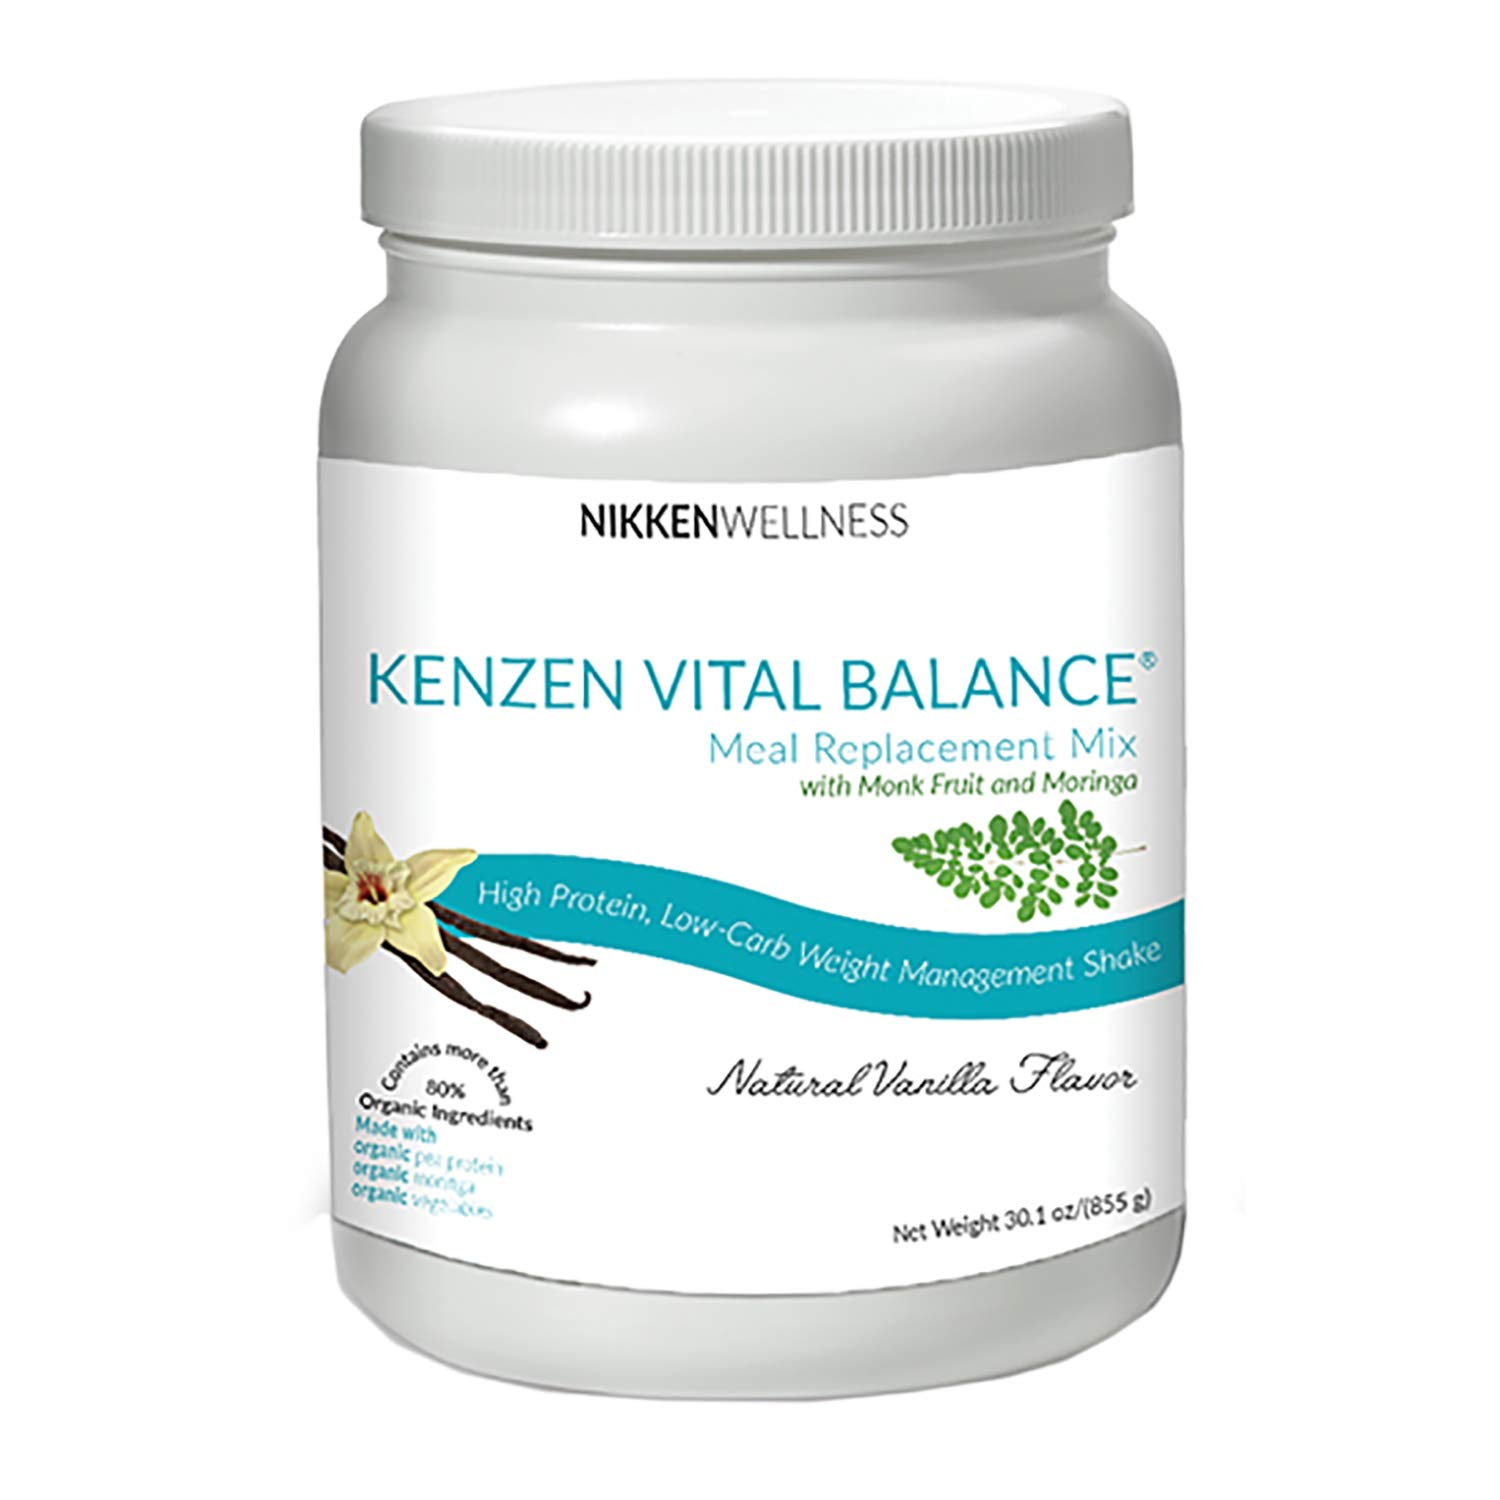 Nikken Kenzen Vital Balance® Meal Replacement Mix 30 oz - Vanilla Flavor by Nikken (Image #1)